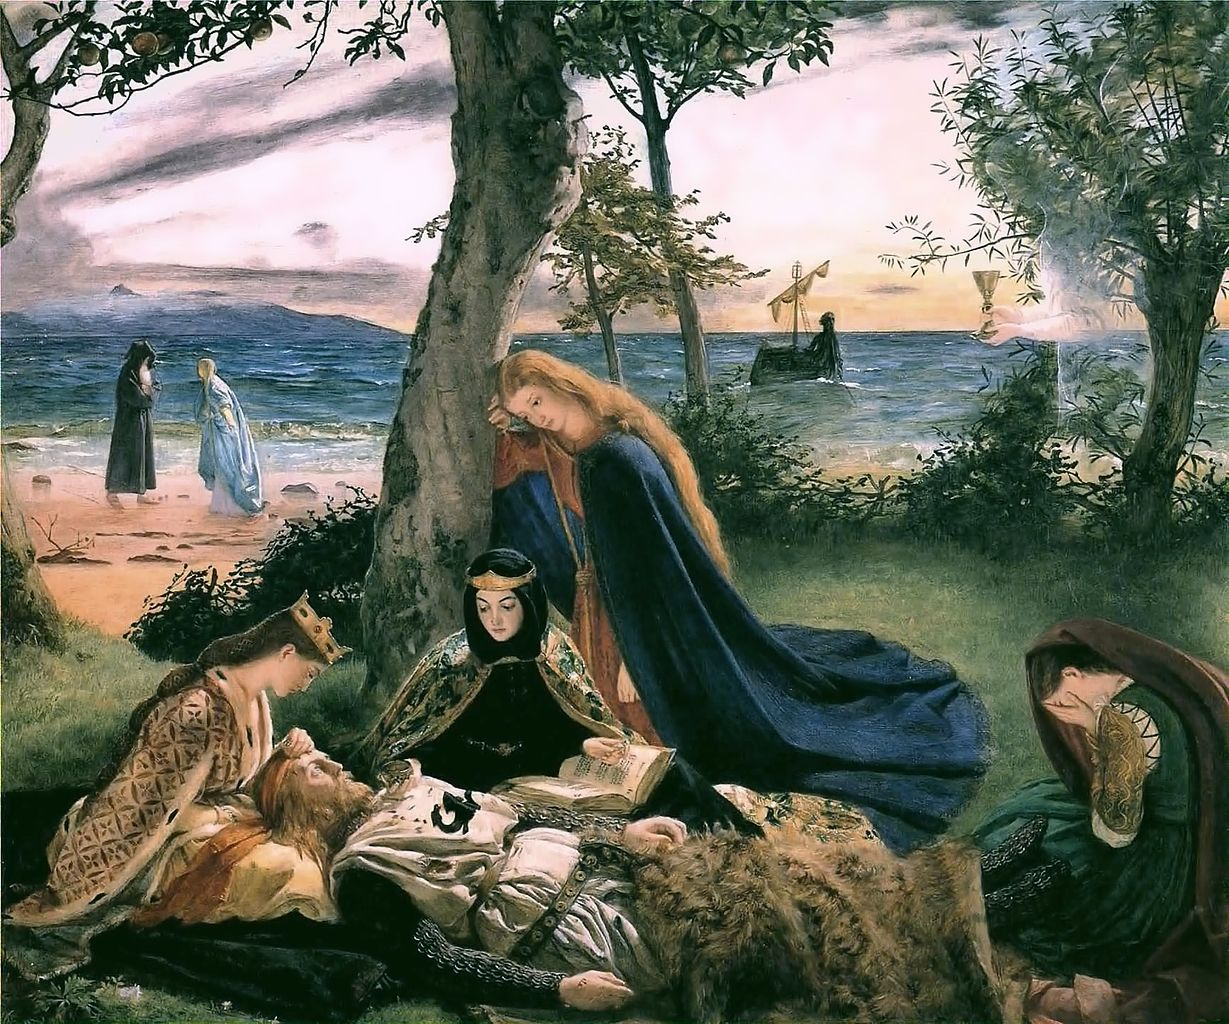 """The Death of King Arthur"" by James Archer. Public Domain, https://commons.wikimedia.org/w/index.php?curid=30188390"